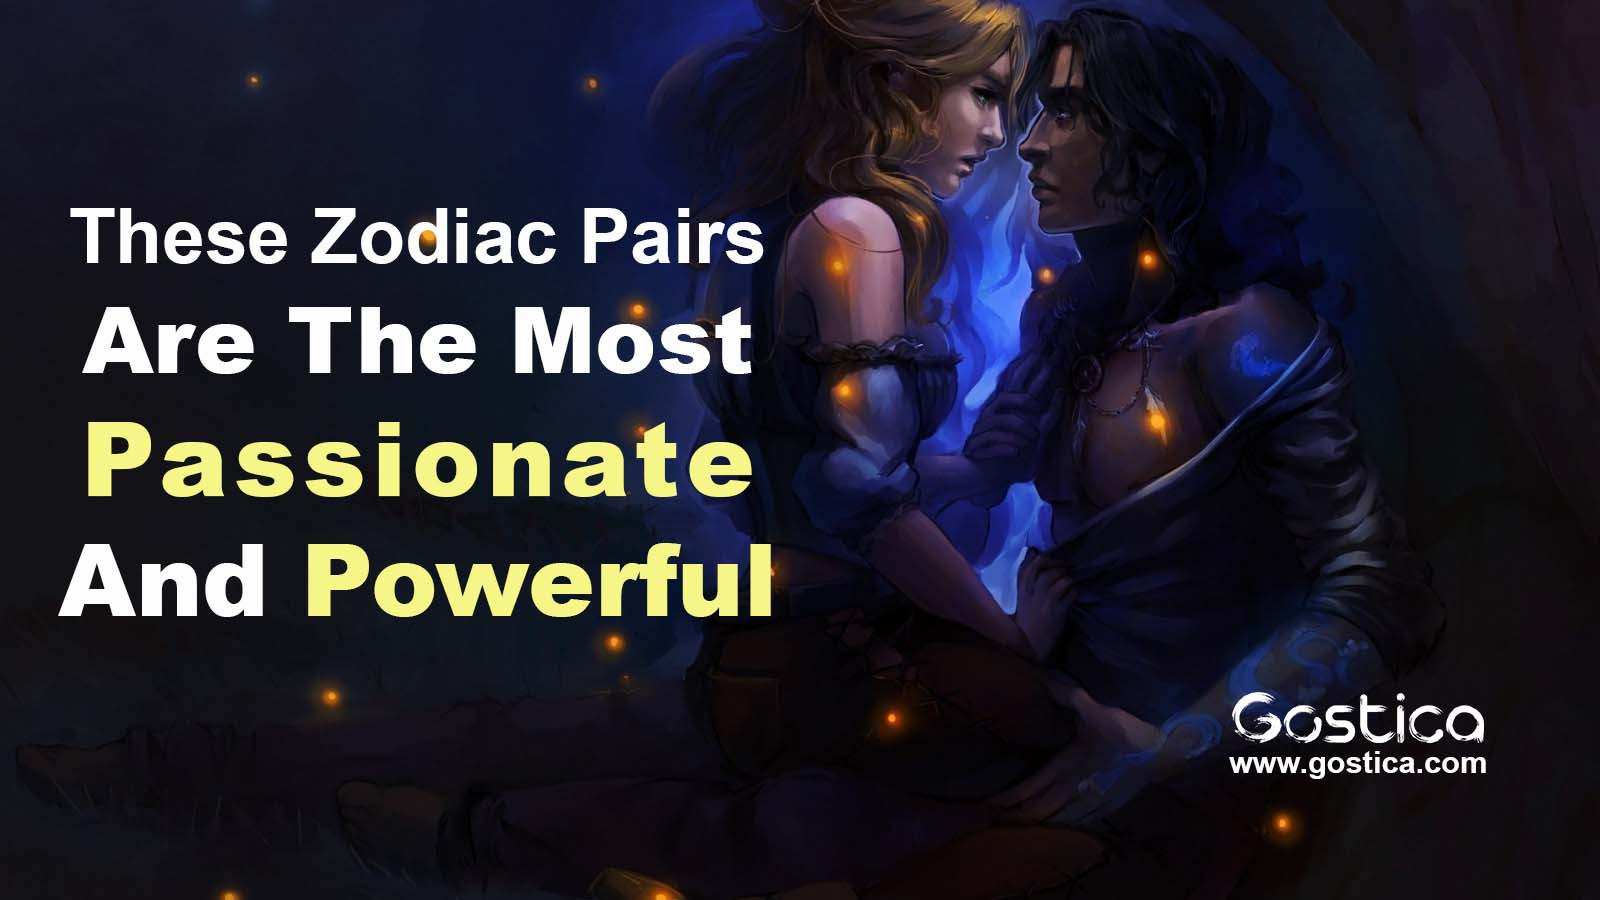 These-Zodiac-Pairs-Are-The-Most-Passionate-And-Powerful.jpg